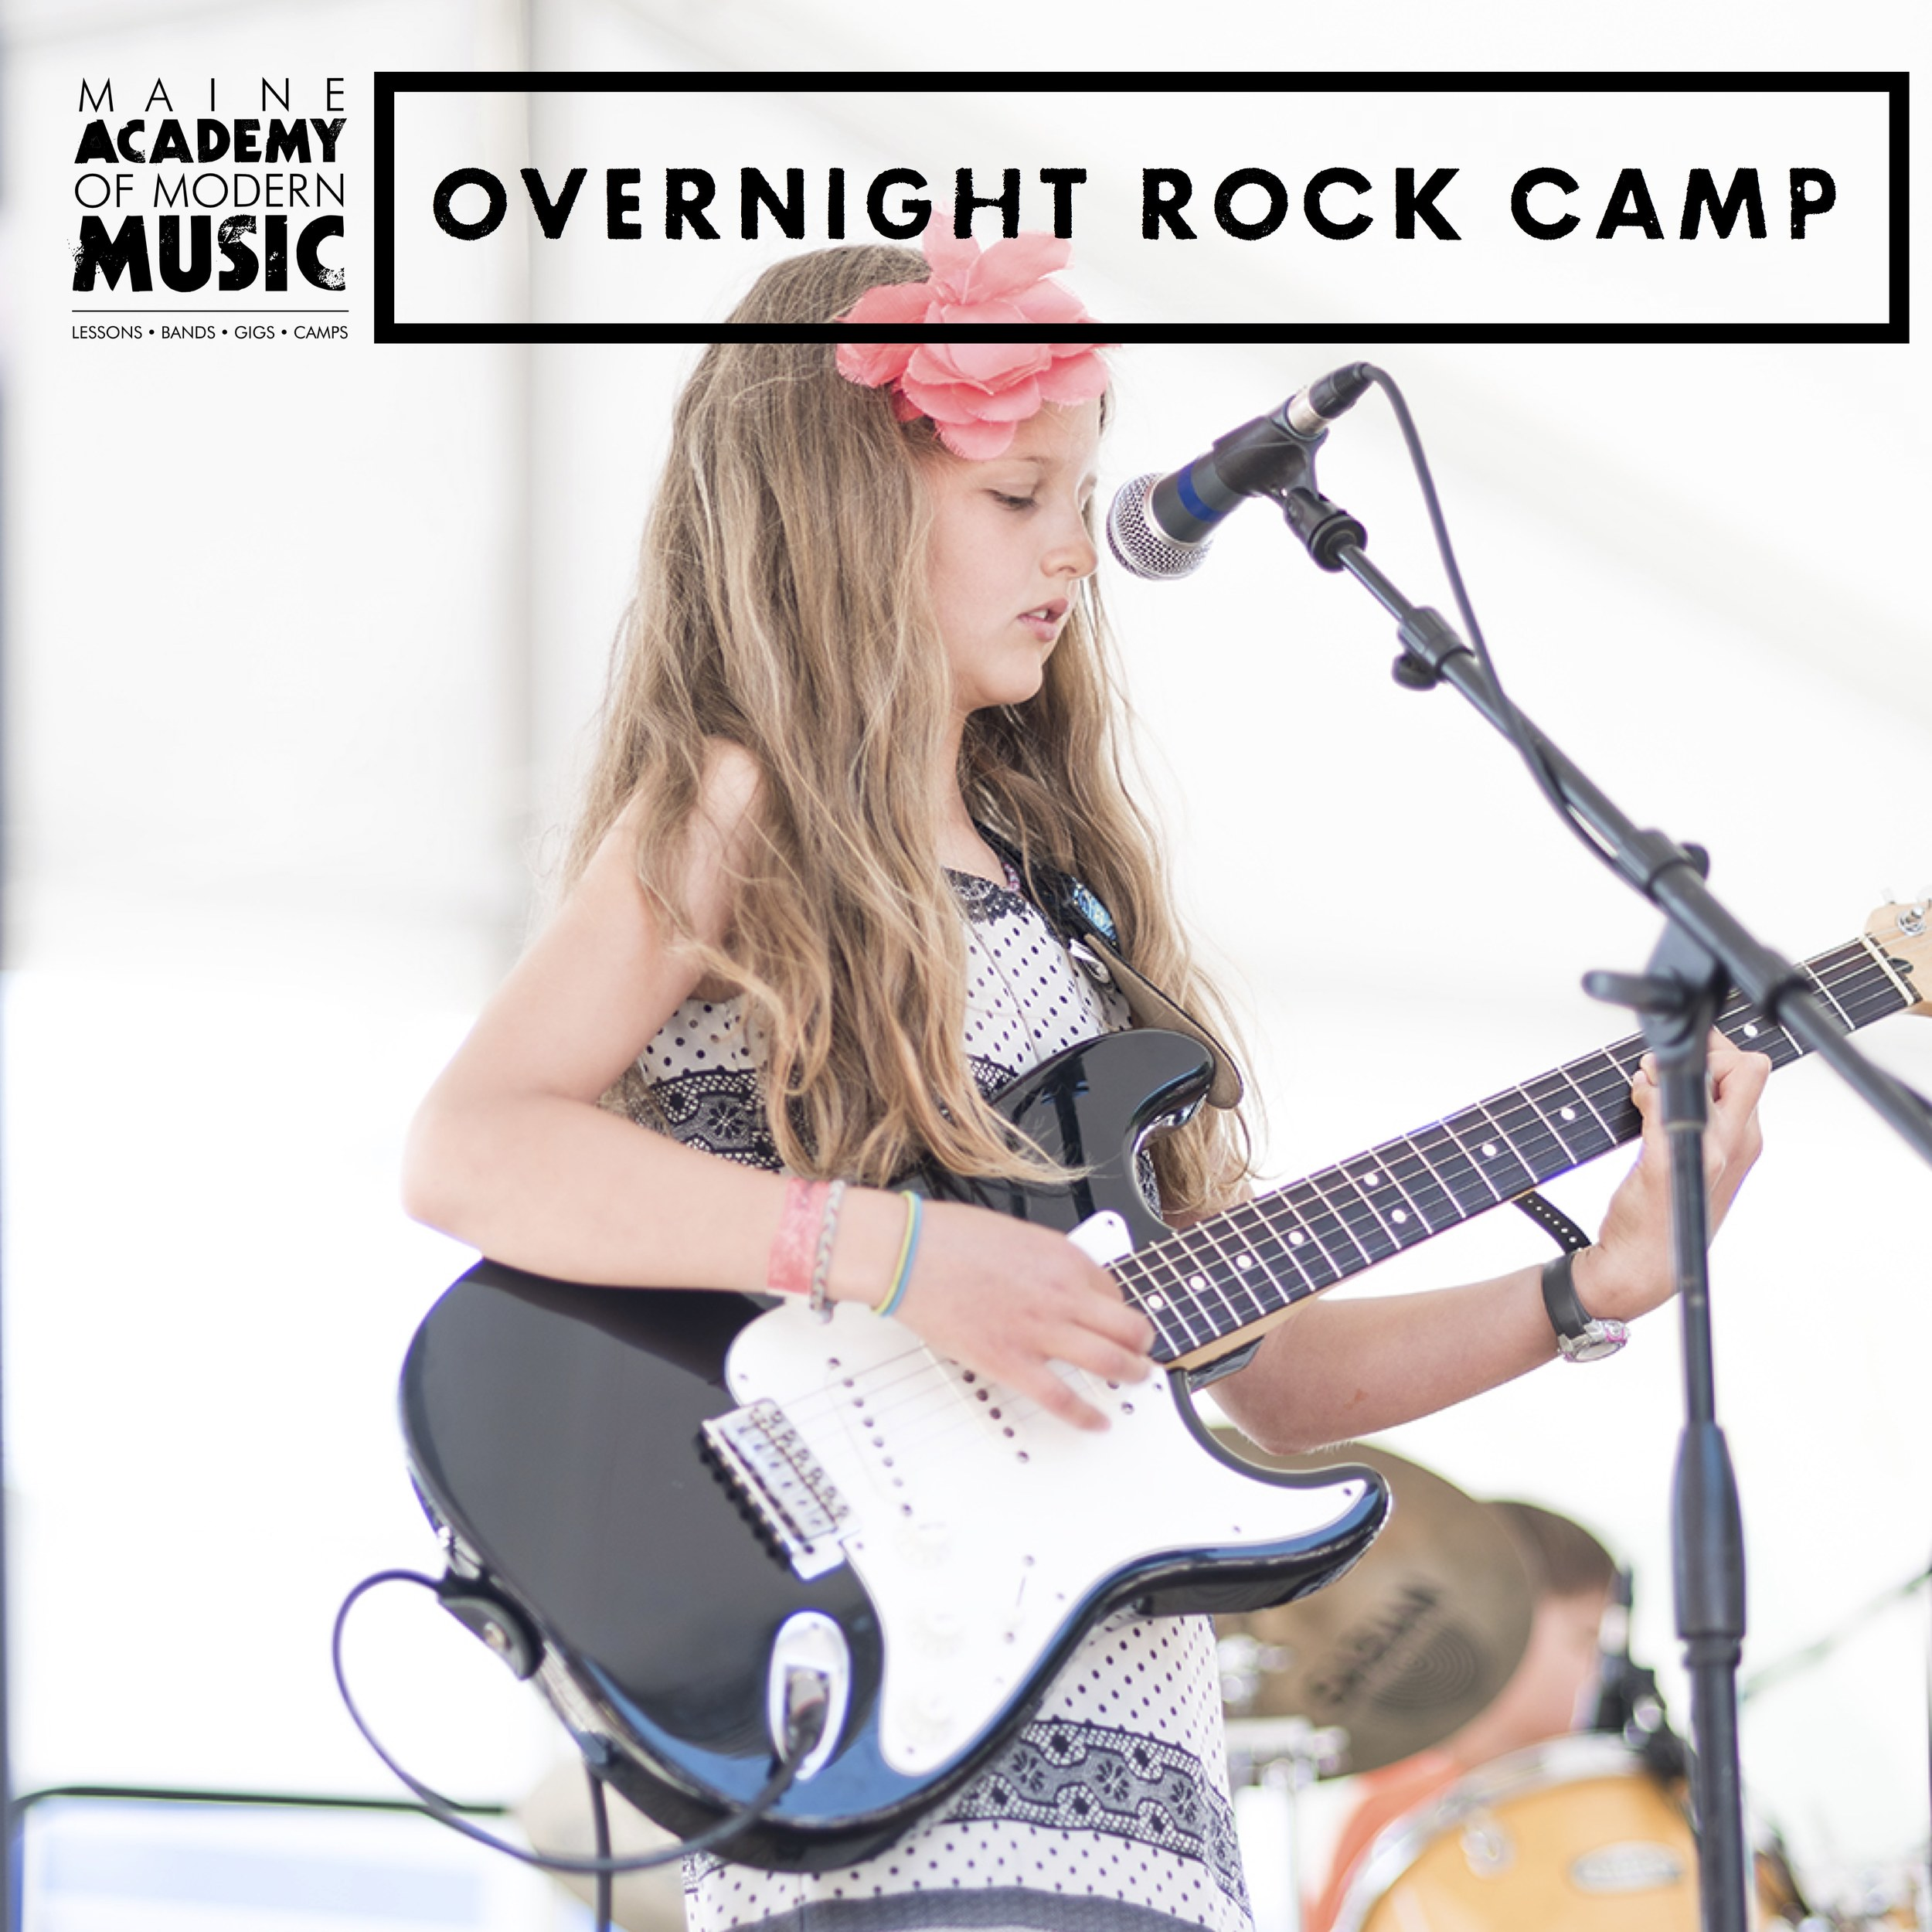 This Camp provides all the basics of the MAMM Rock Camp experience with the benefit of being overnight! Camp is held at the University of Maine at Machias. Students will arrive Sunday afternoon and leave campus the following Saturday after breakfast and will perform at a noontime concert. Campers get even more practice time in the evenings to jam together while enjoying the beautiful UMM campus. Located on the northern part of Maine's incredible rugged coast, Machias offers whale watching, lighthouses, hiking, kayaking, eagles and lobster rolls - it's the perfect summer getaway.   MACHIAS - July 28 - August 3    TUITION: $900 Double / $950 Single / $300 Day Program    PROGRAM HOURS: 9am-3:30pm